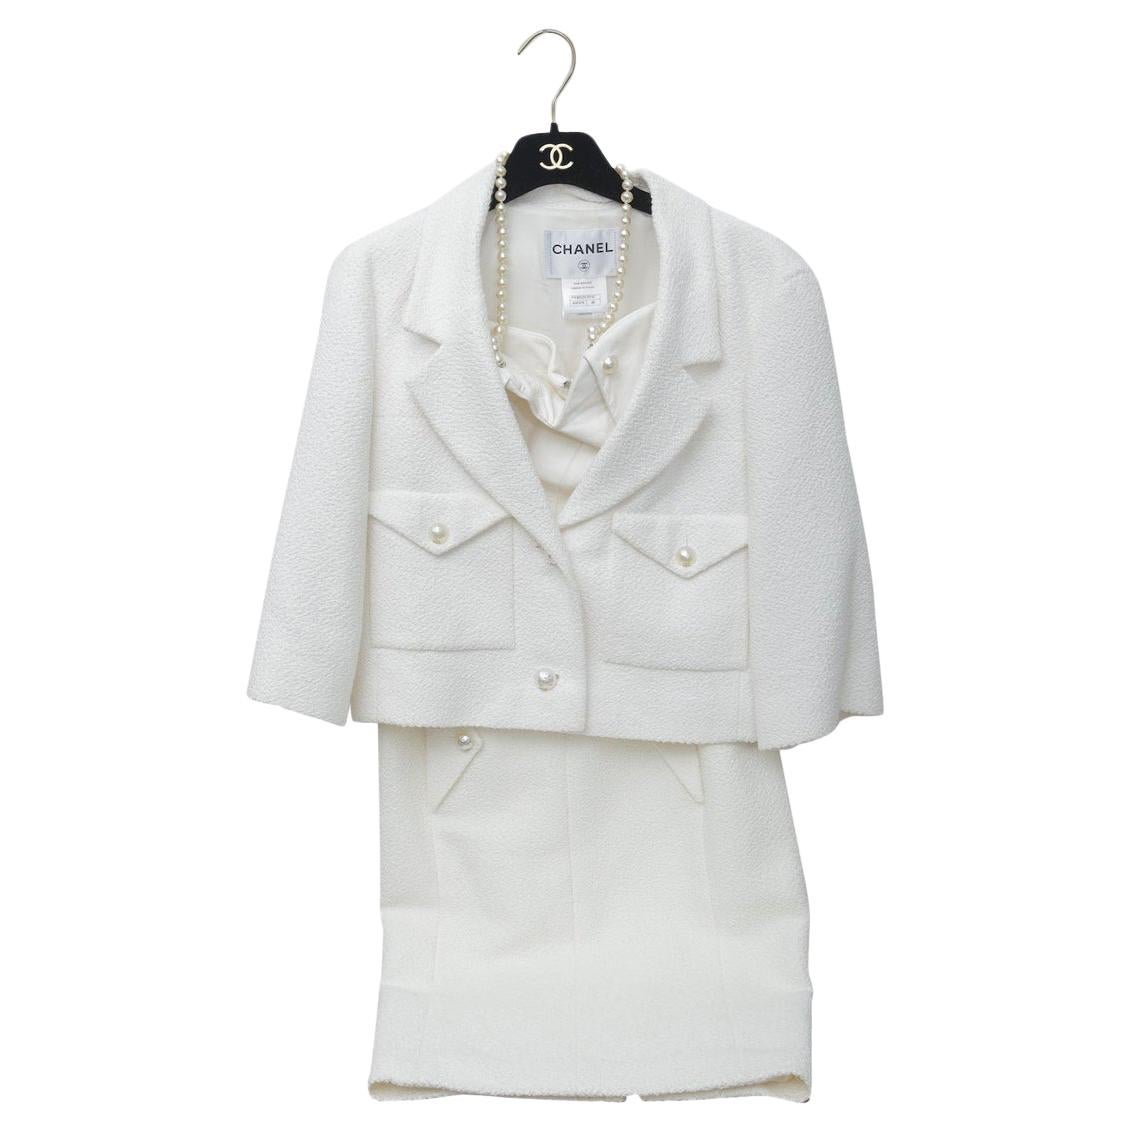 Superb Chanel White Tweet Dress with Pearls with Matching Crop Jacket